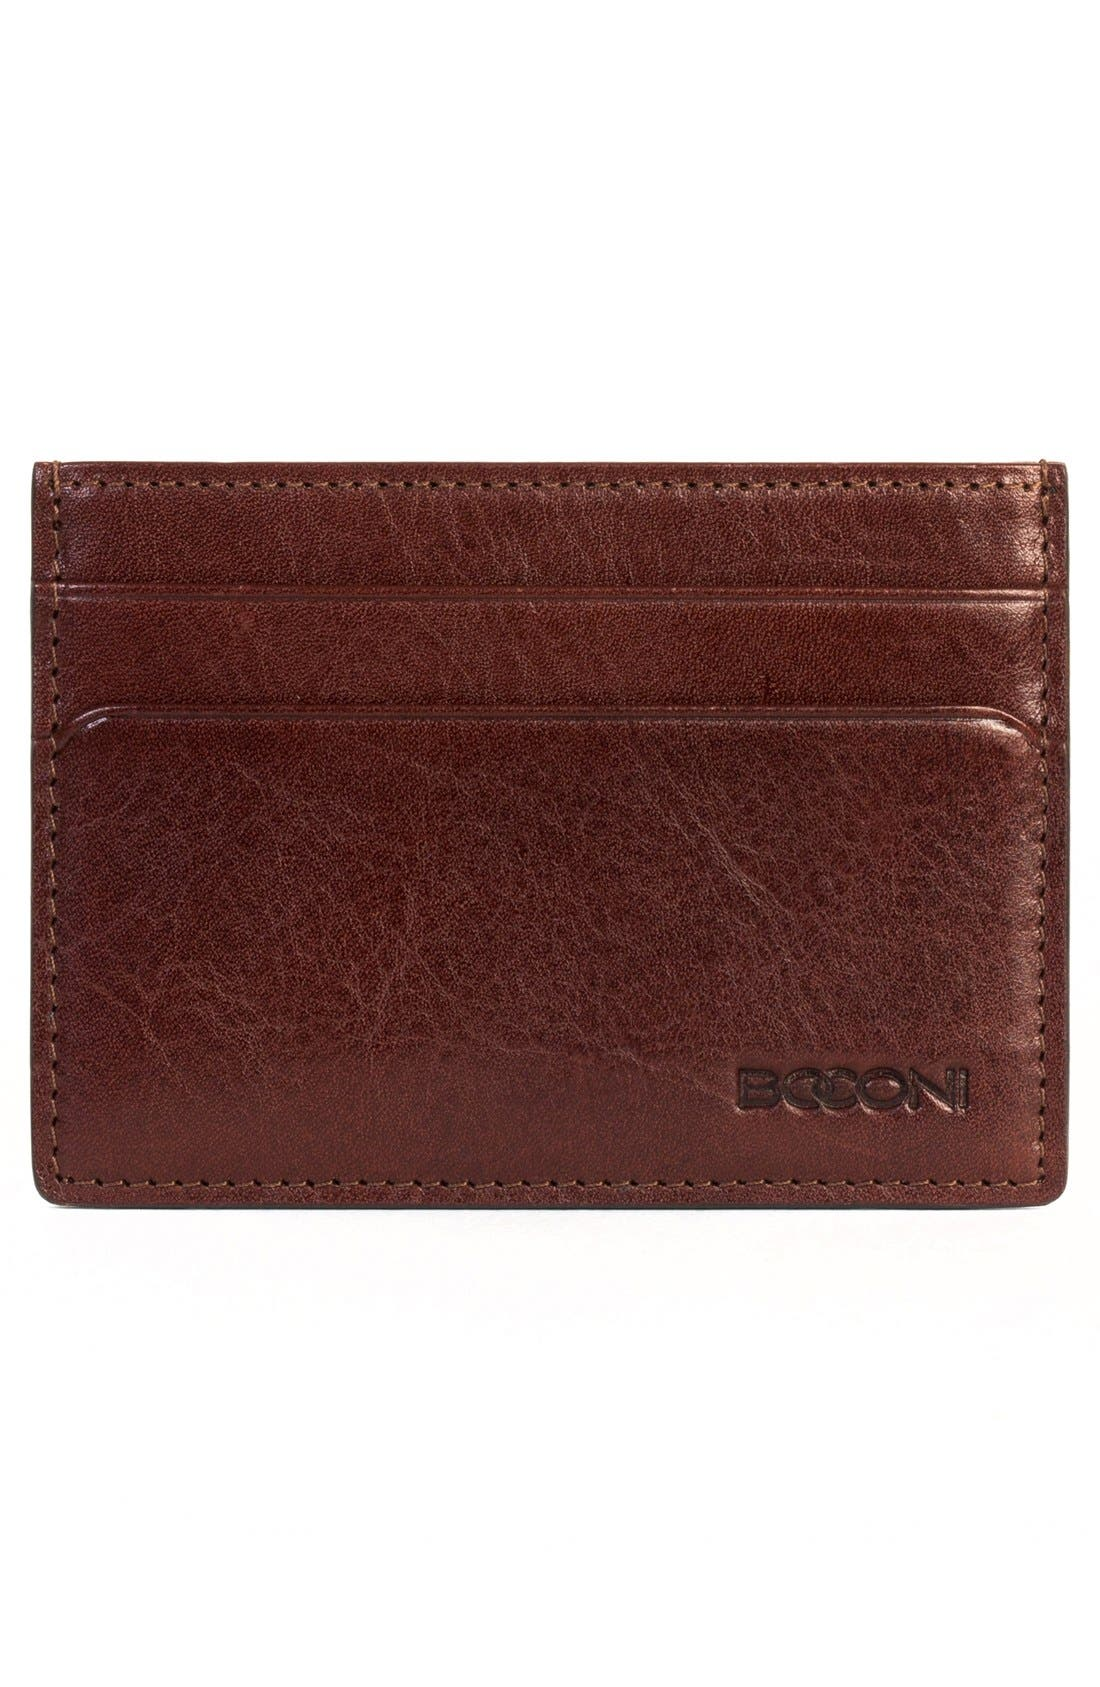 'Becker' Leather Card Case,                             Alternate thumbnail 2, color,                             215